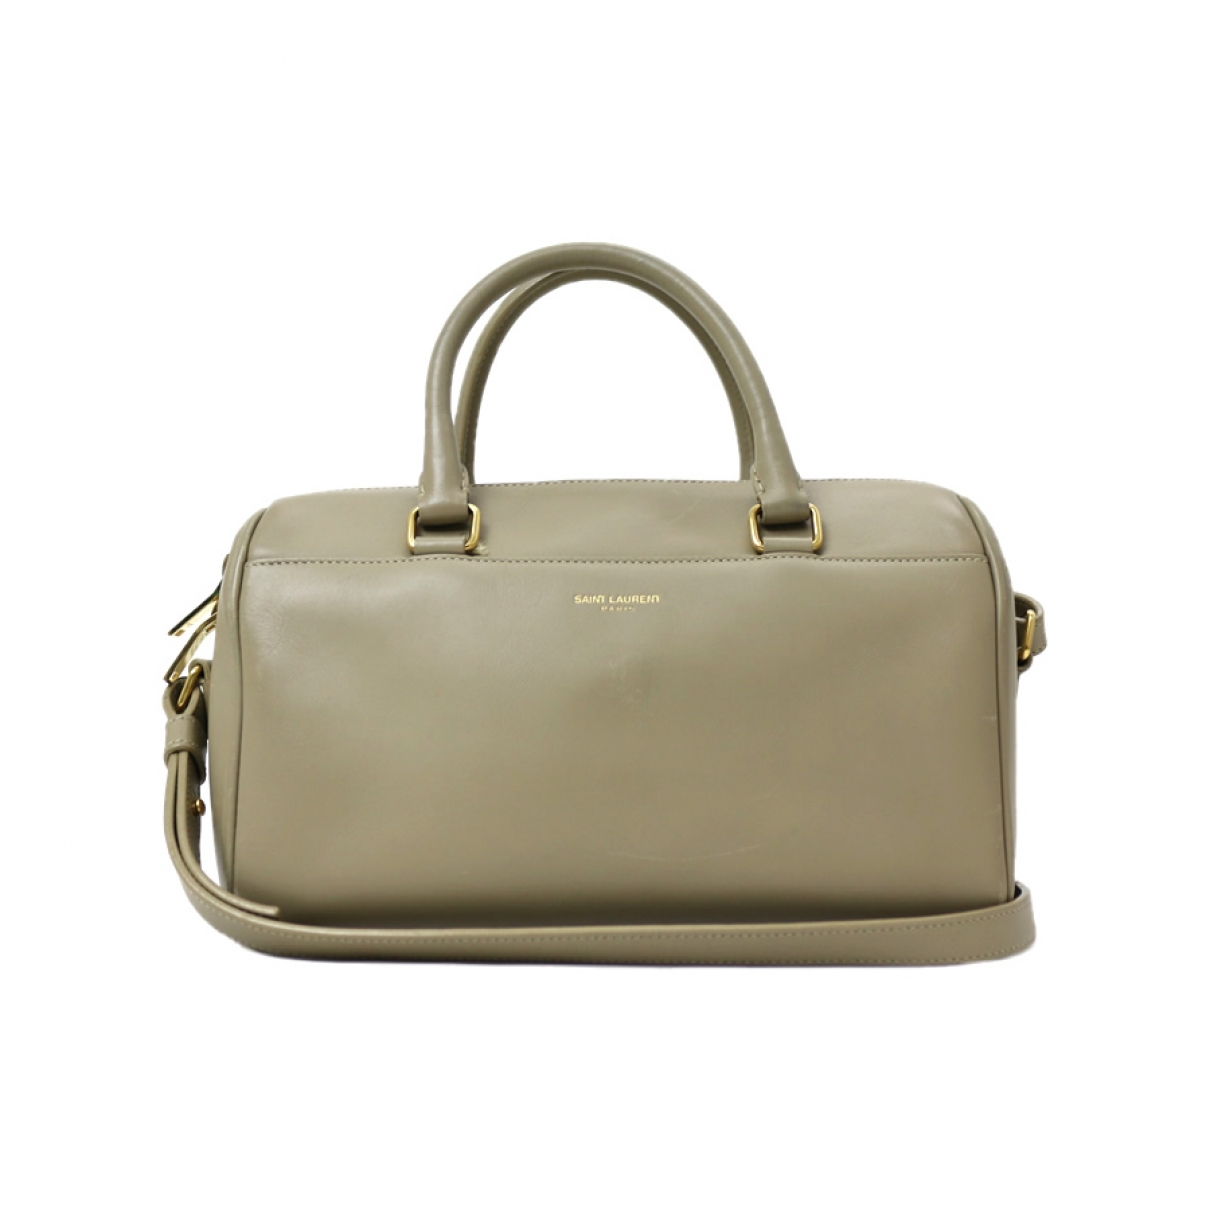 Saint Laurent \N Beige Leather handbag for Women \N